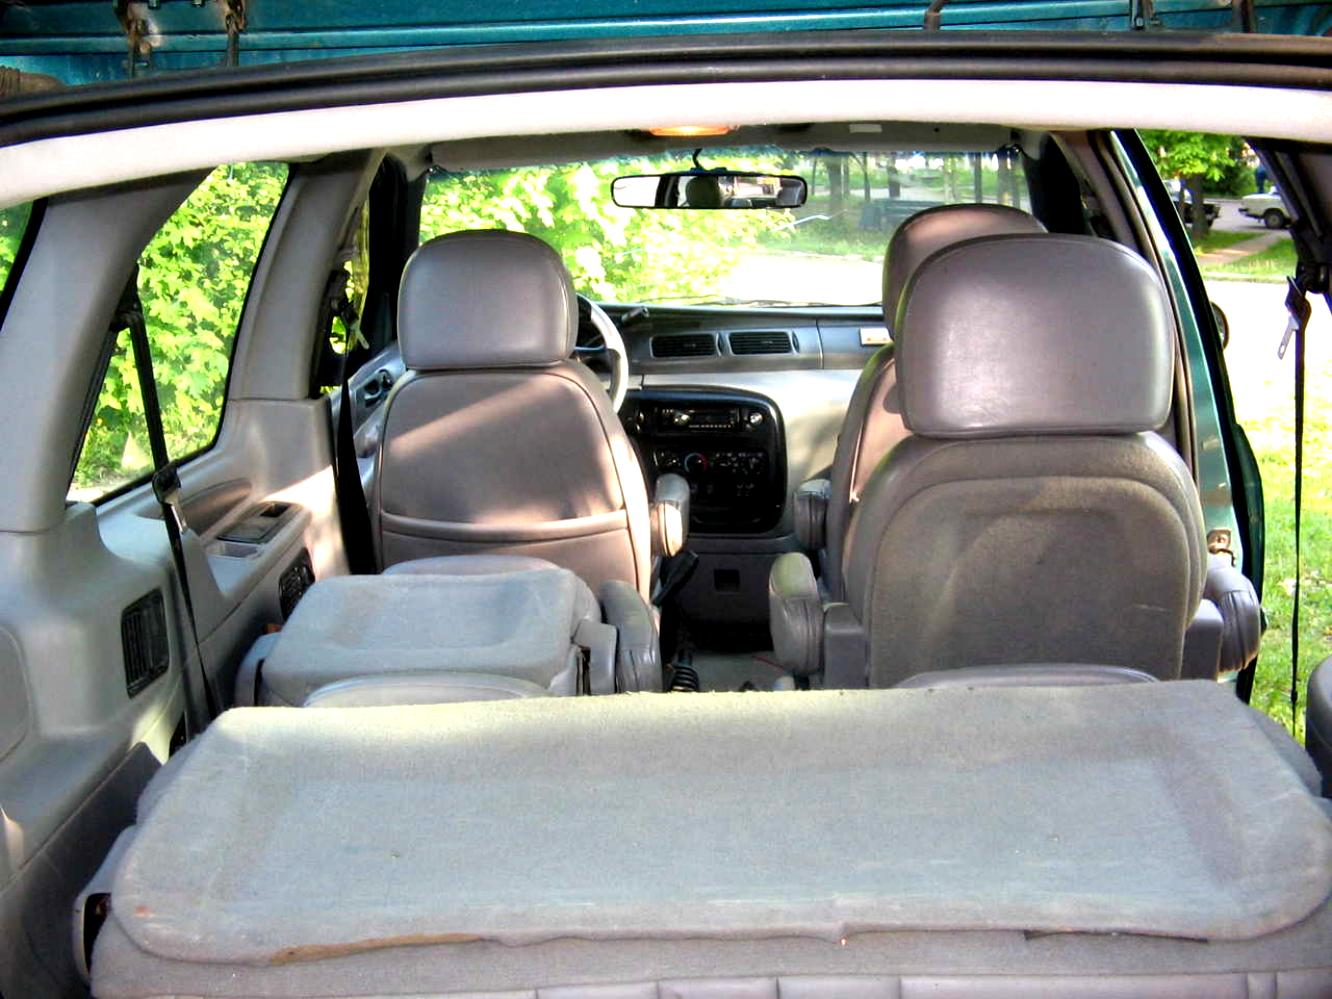 Ford Windstar 1998 #46